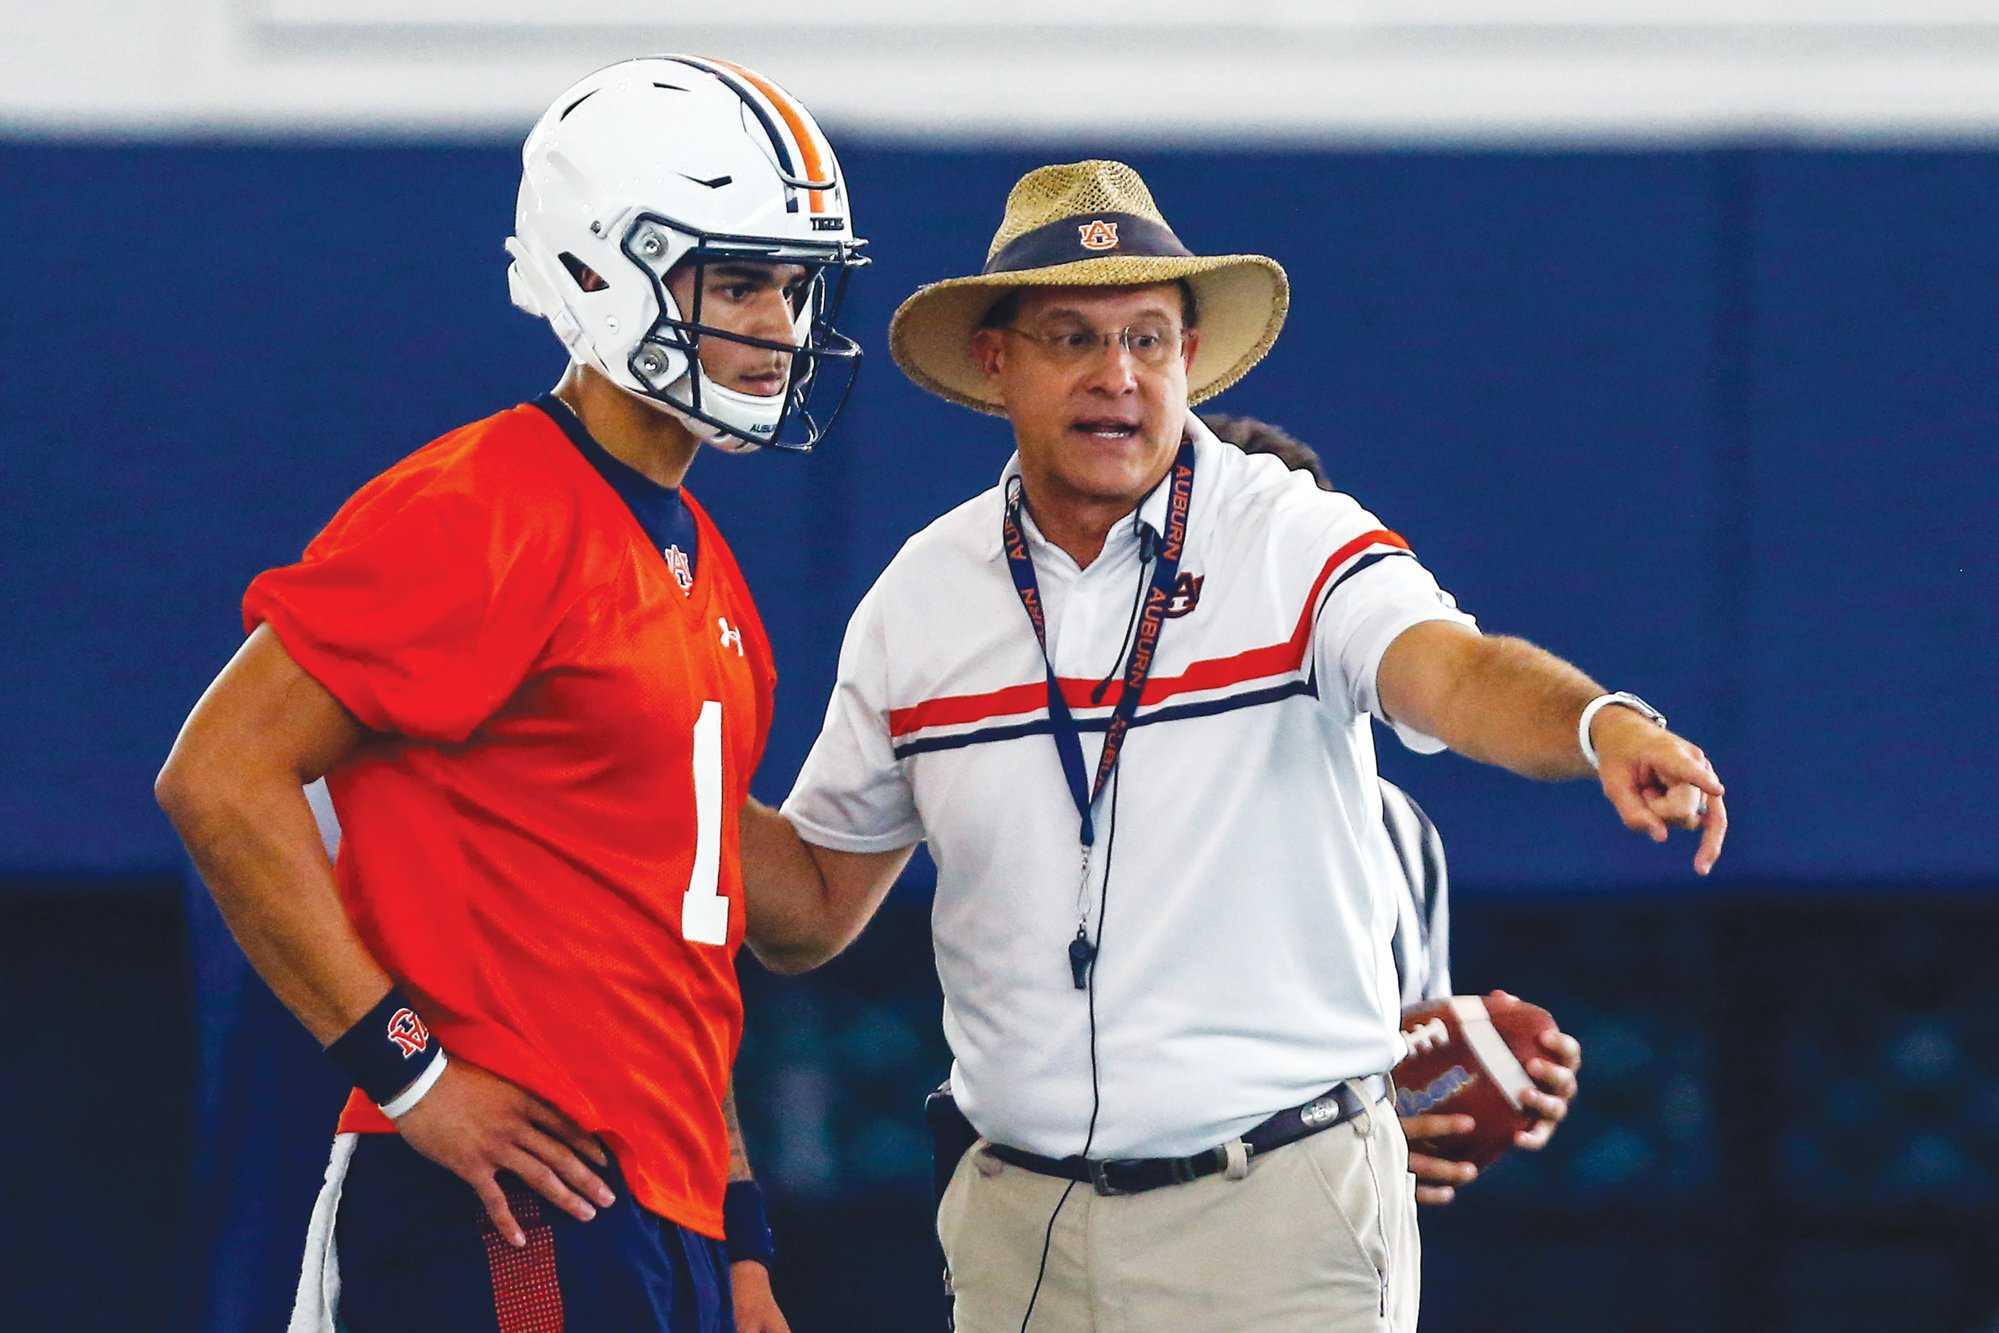 THE ASSOCIATED PRESS Gus Malzahn, right, is among the college football coaches on the hot seat heading into the 2019 season.